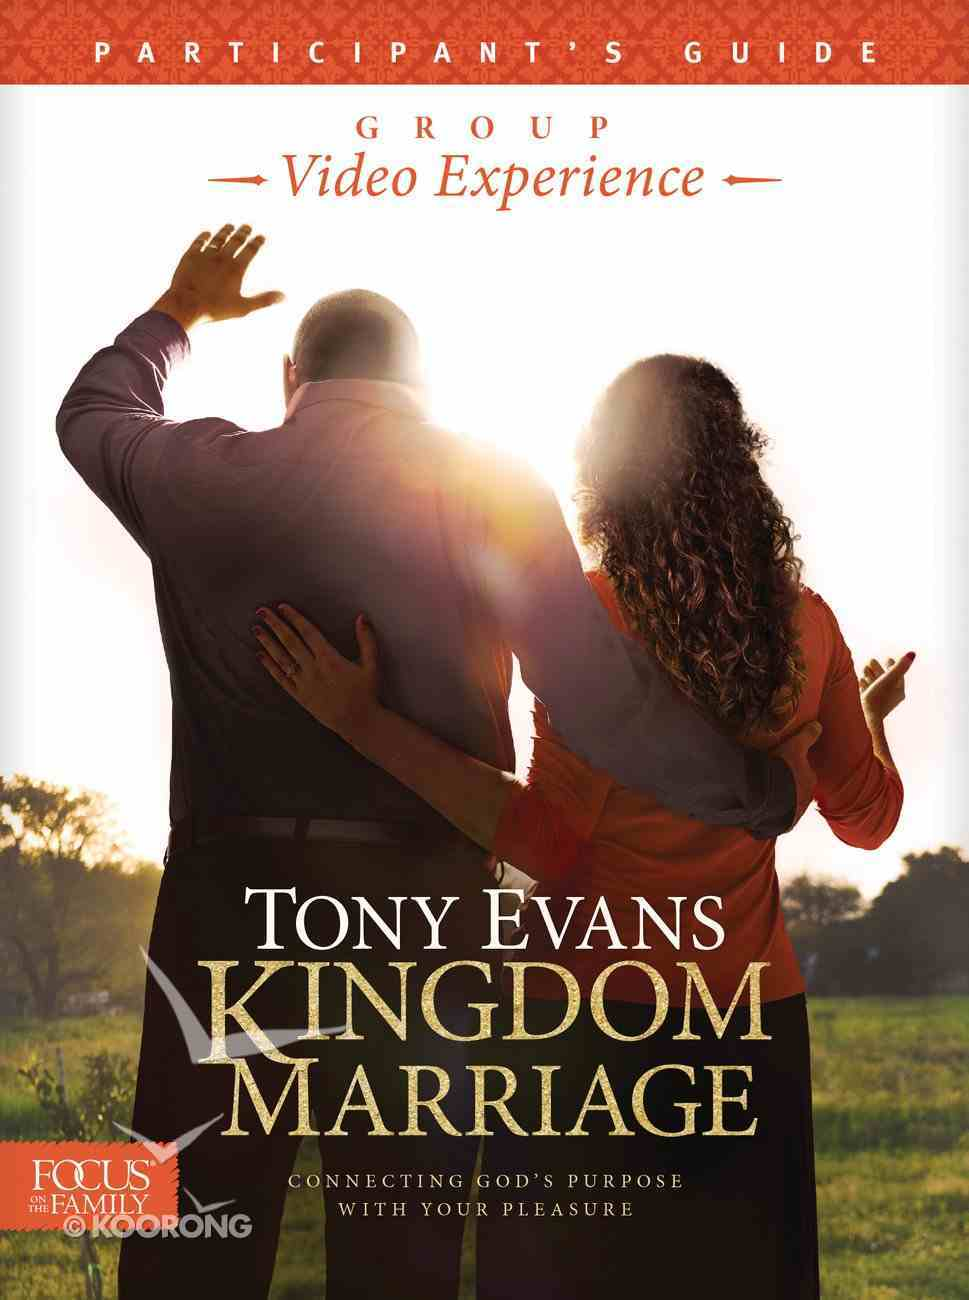 Kingdom Marriage (Group Video Experience) (Participant's Study Guide) Paperback